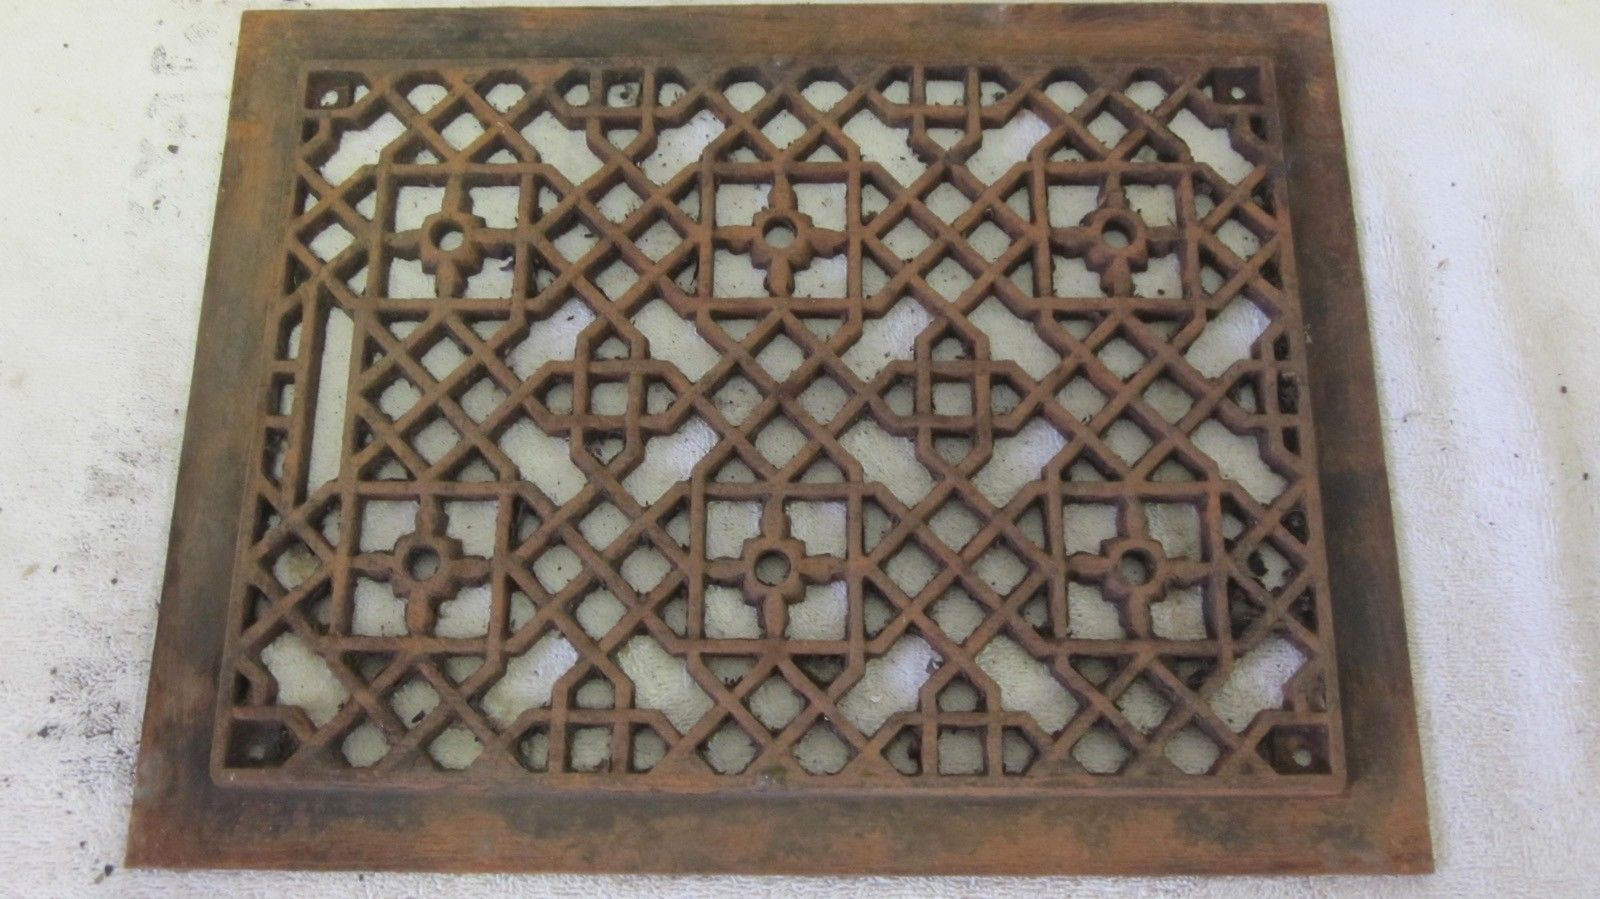 Antique Floor Wall 10 X 14 Furnace Cast Iron Hot Air Register Heat Grate Antique Flooring Antiques Furnace